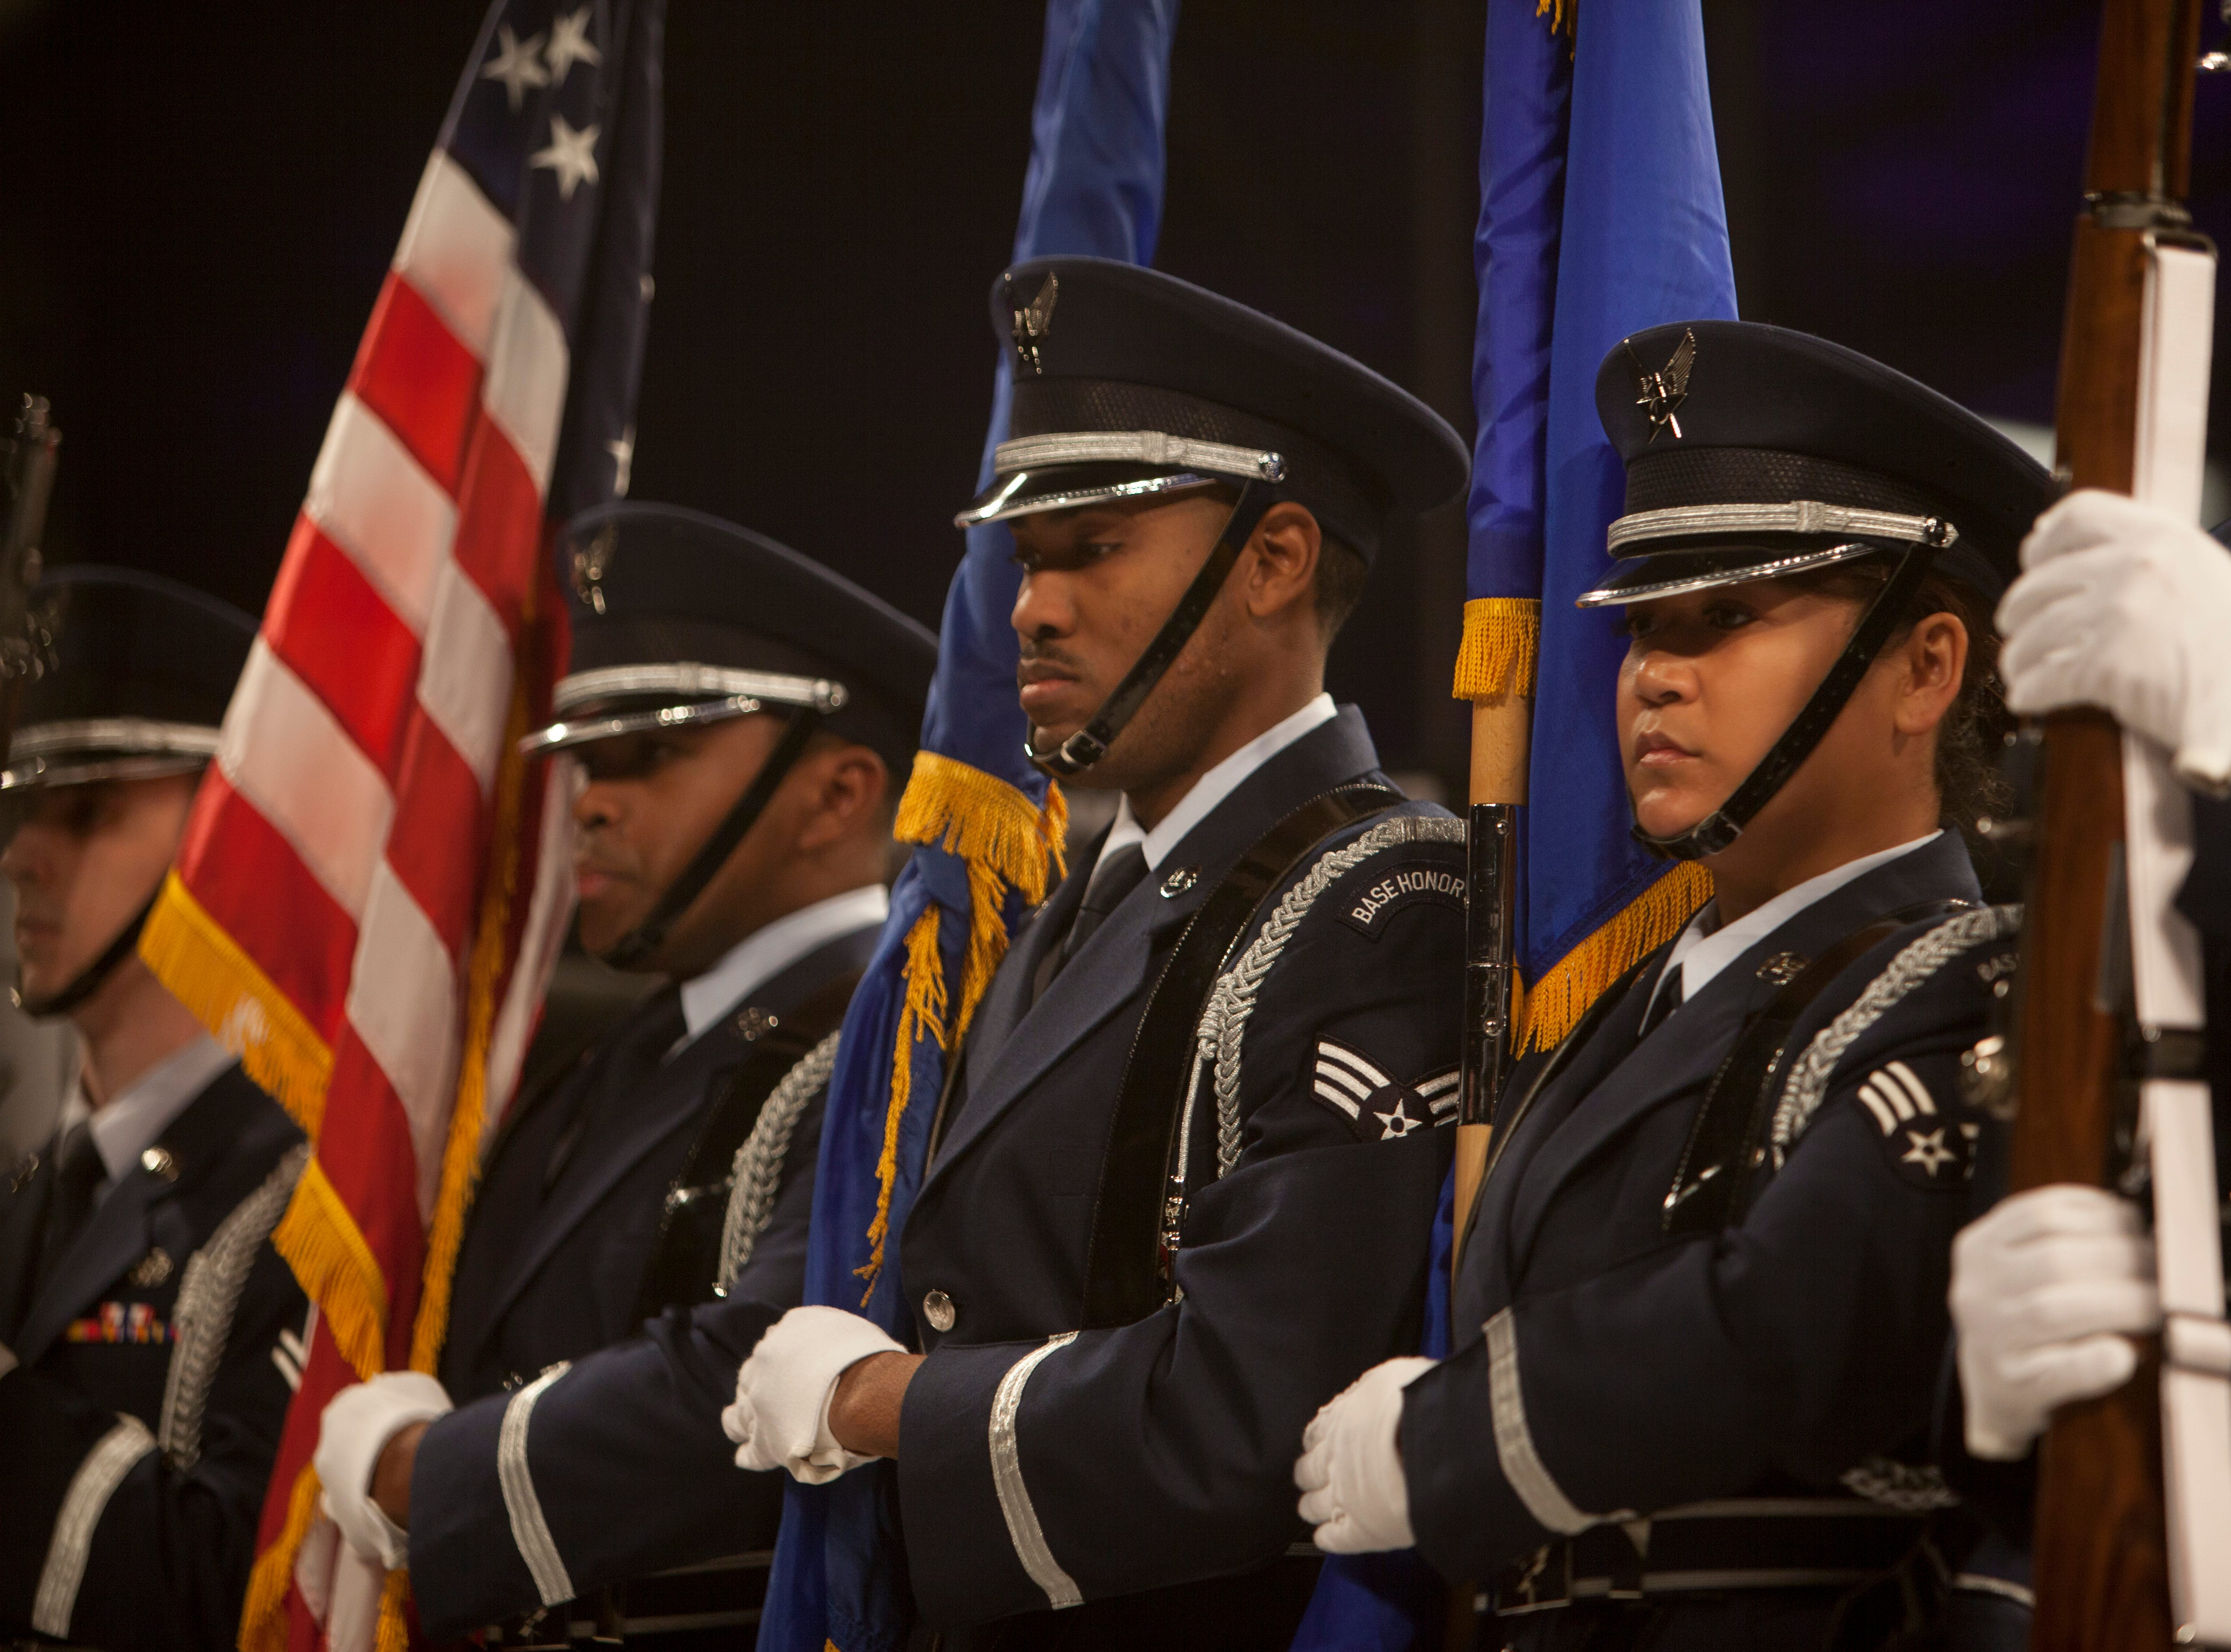 The Nellis AFB ROTC presents the flag during Mayhem in Mesquite Saturday, Dec. 15, 2018.